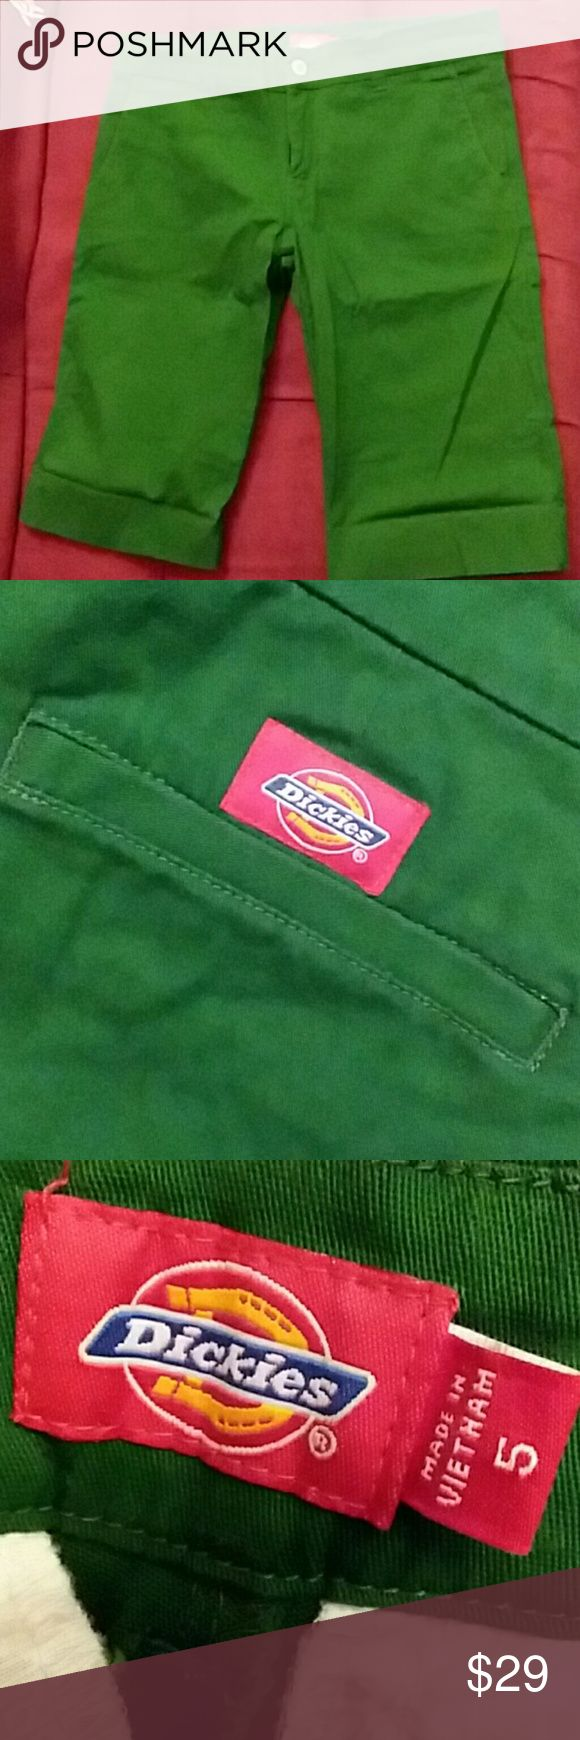 Green Dickies shorts In excellent condition. Dickies Shorts